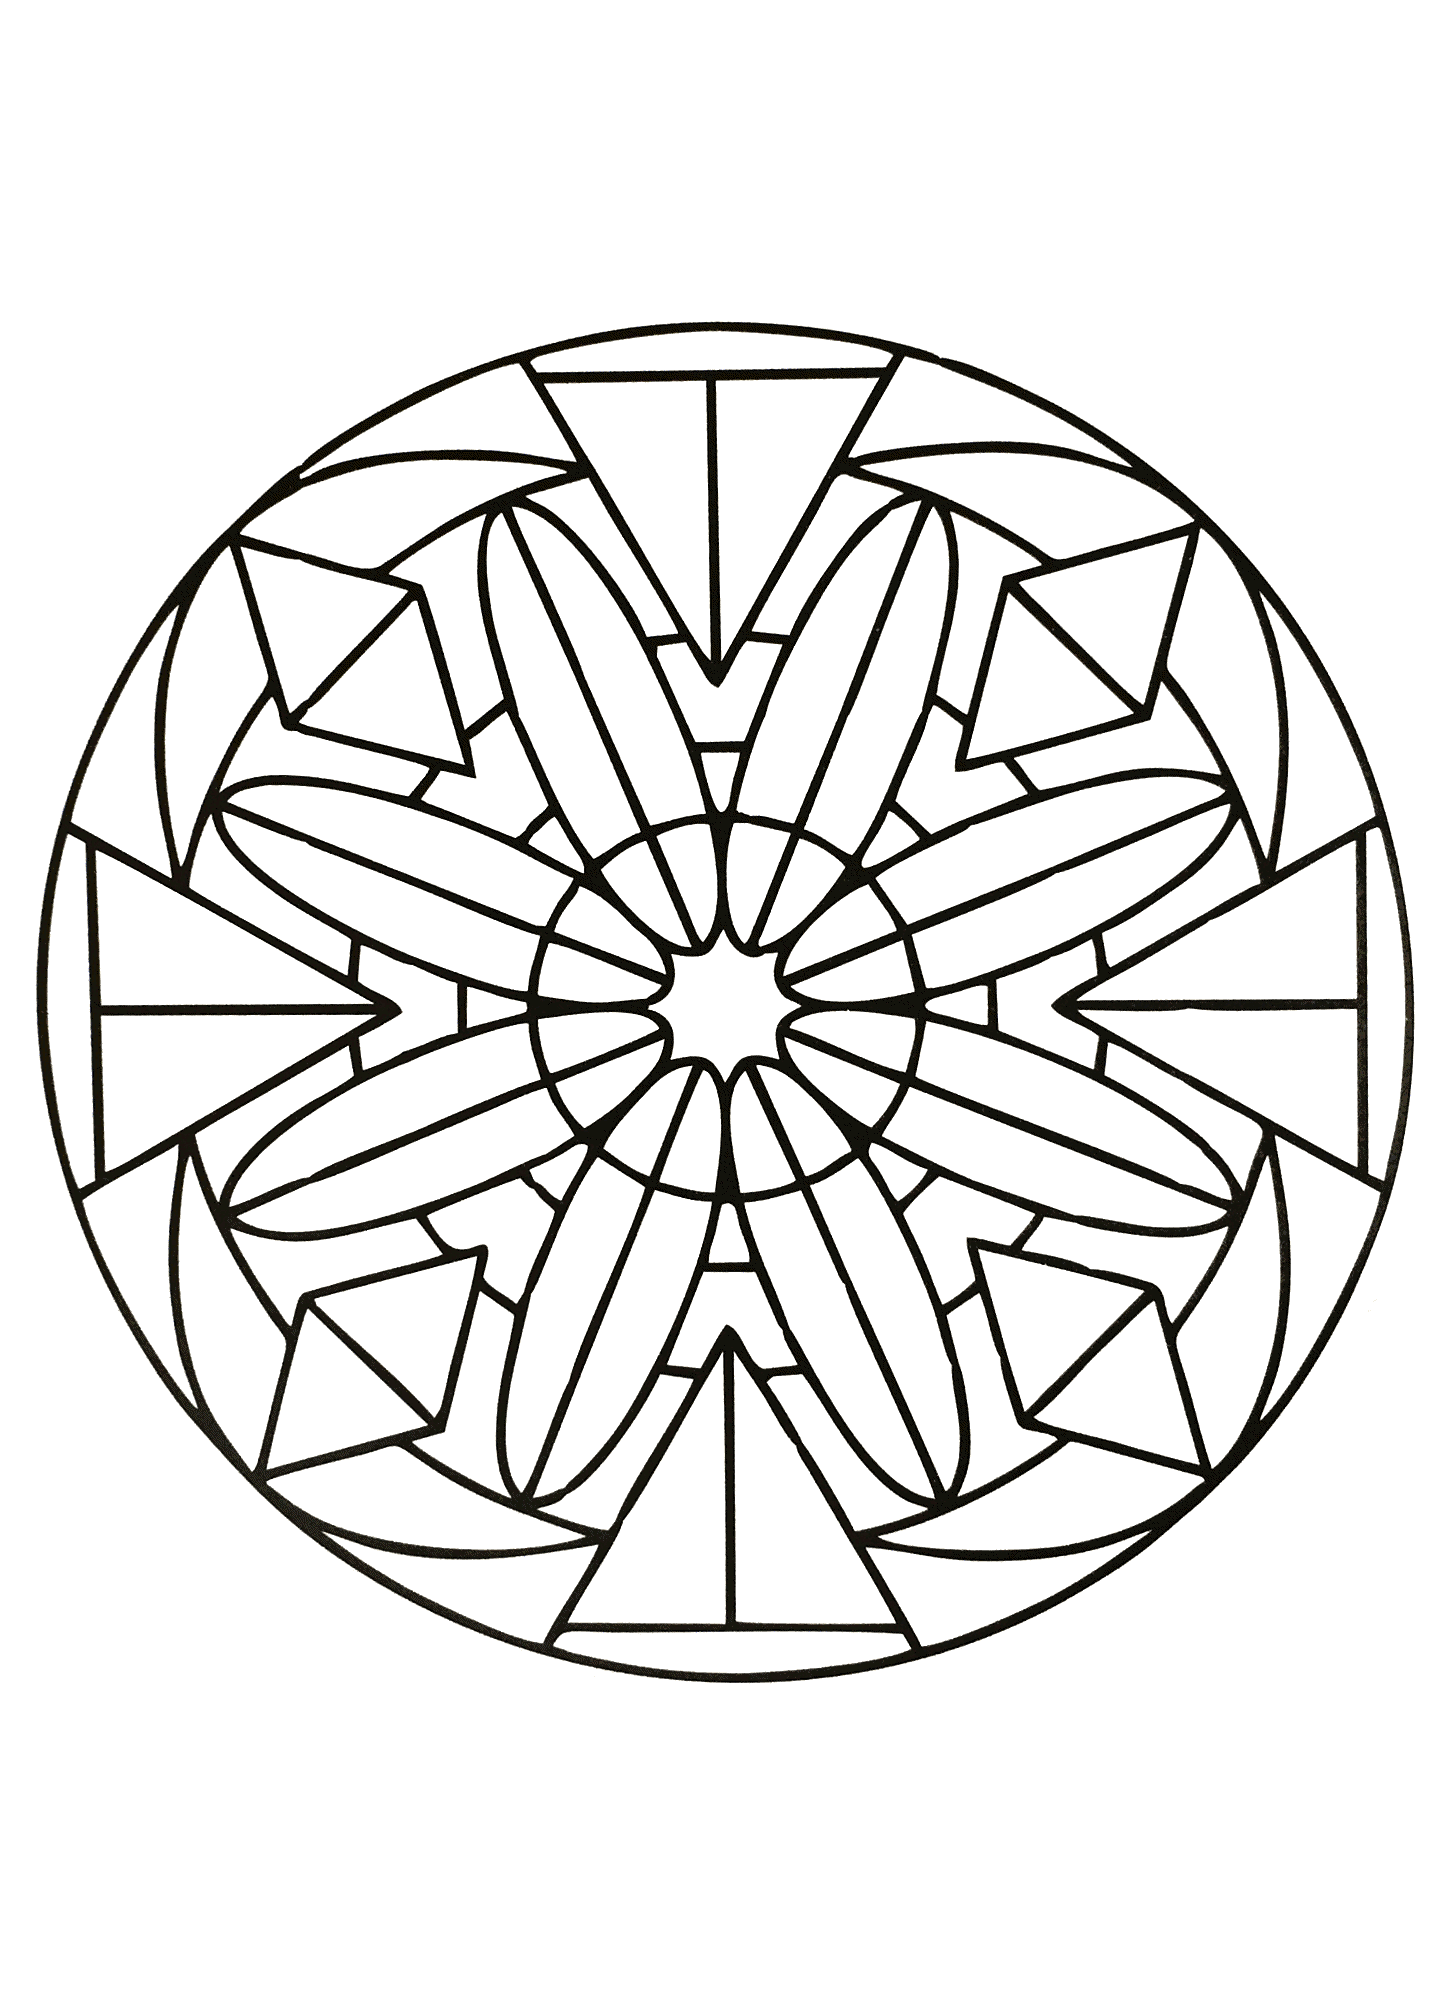 Mandalas to download for free 9 Mandalas Coloring Pages